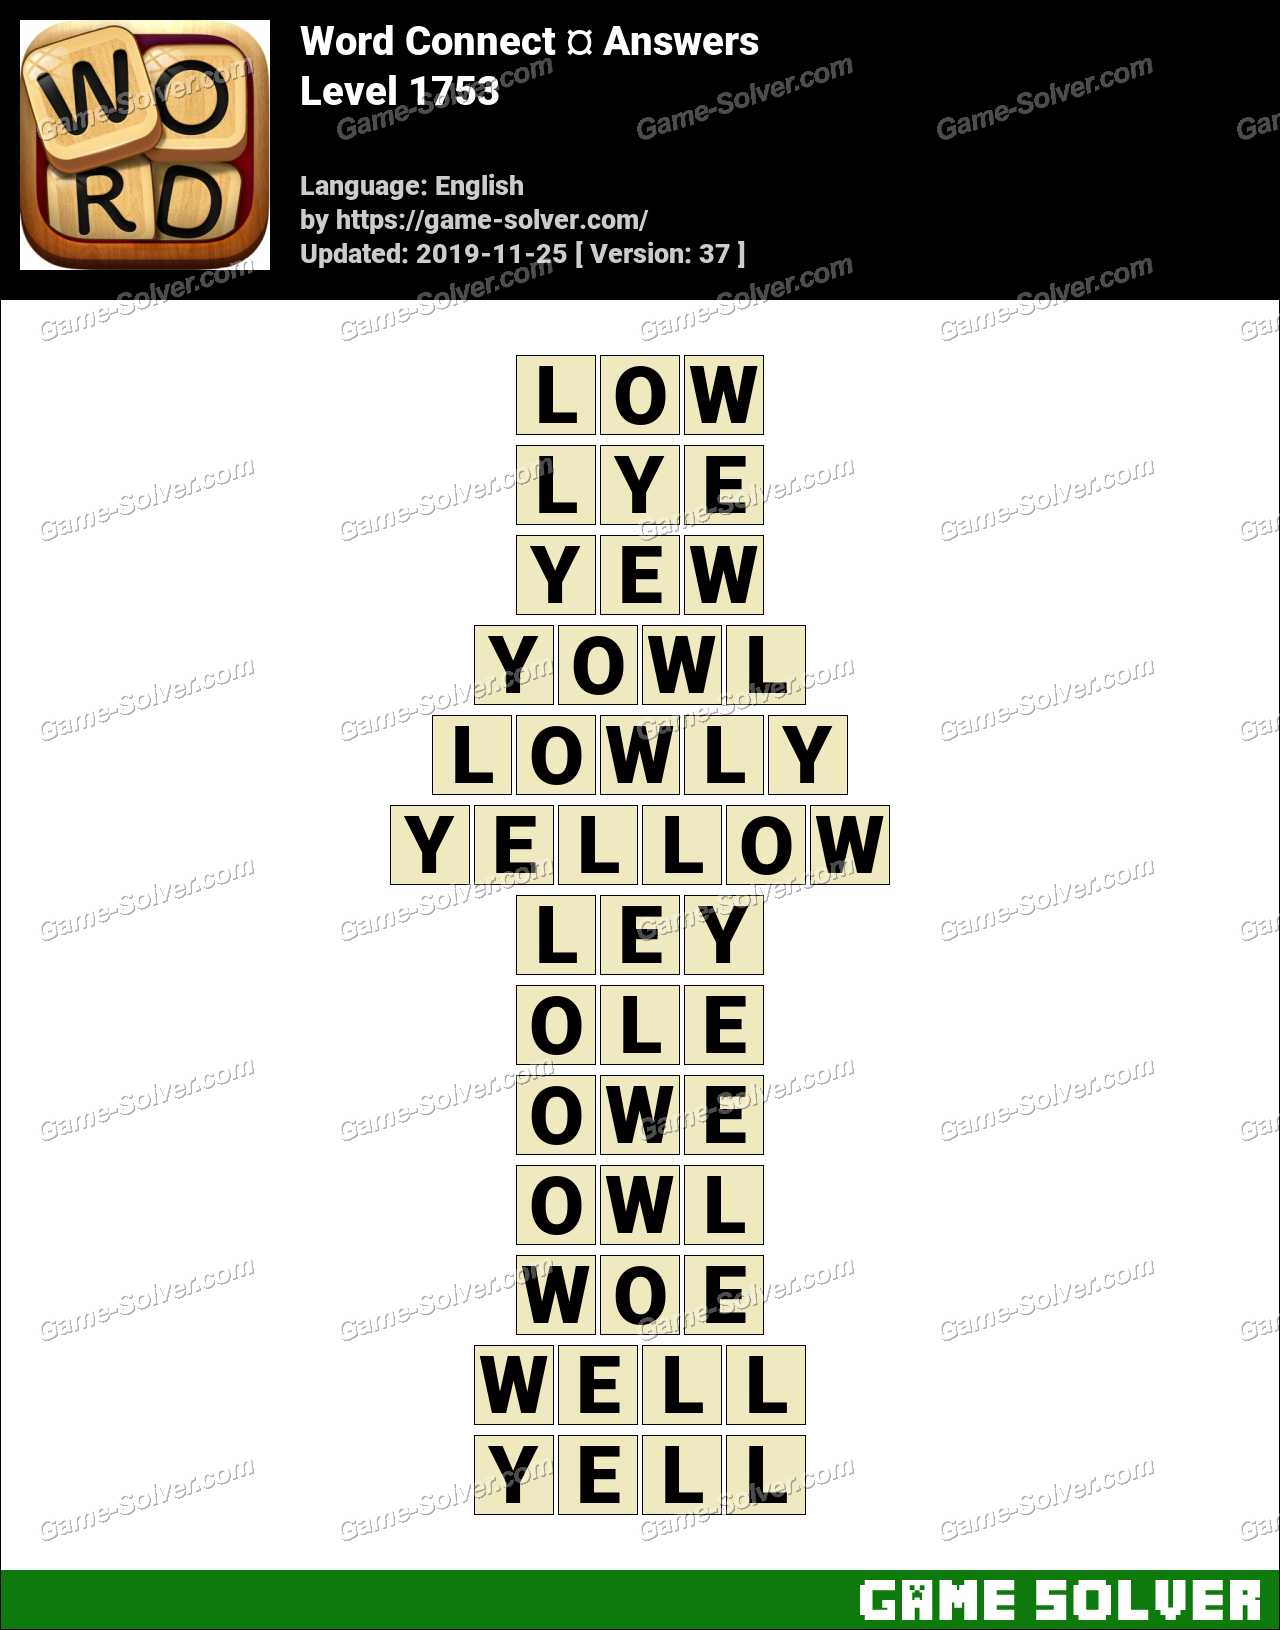 Word Connect Level 1753 Answers